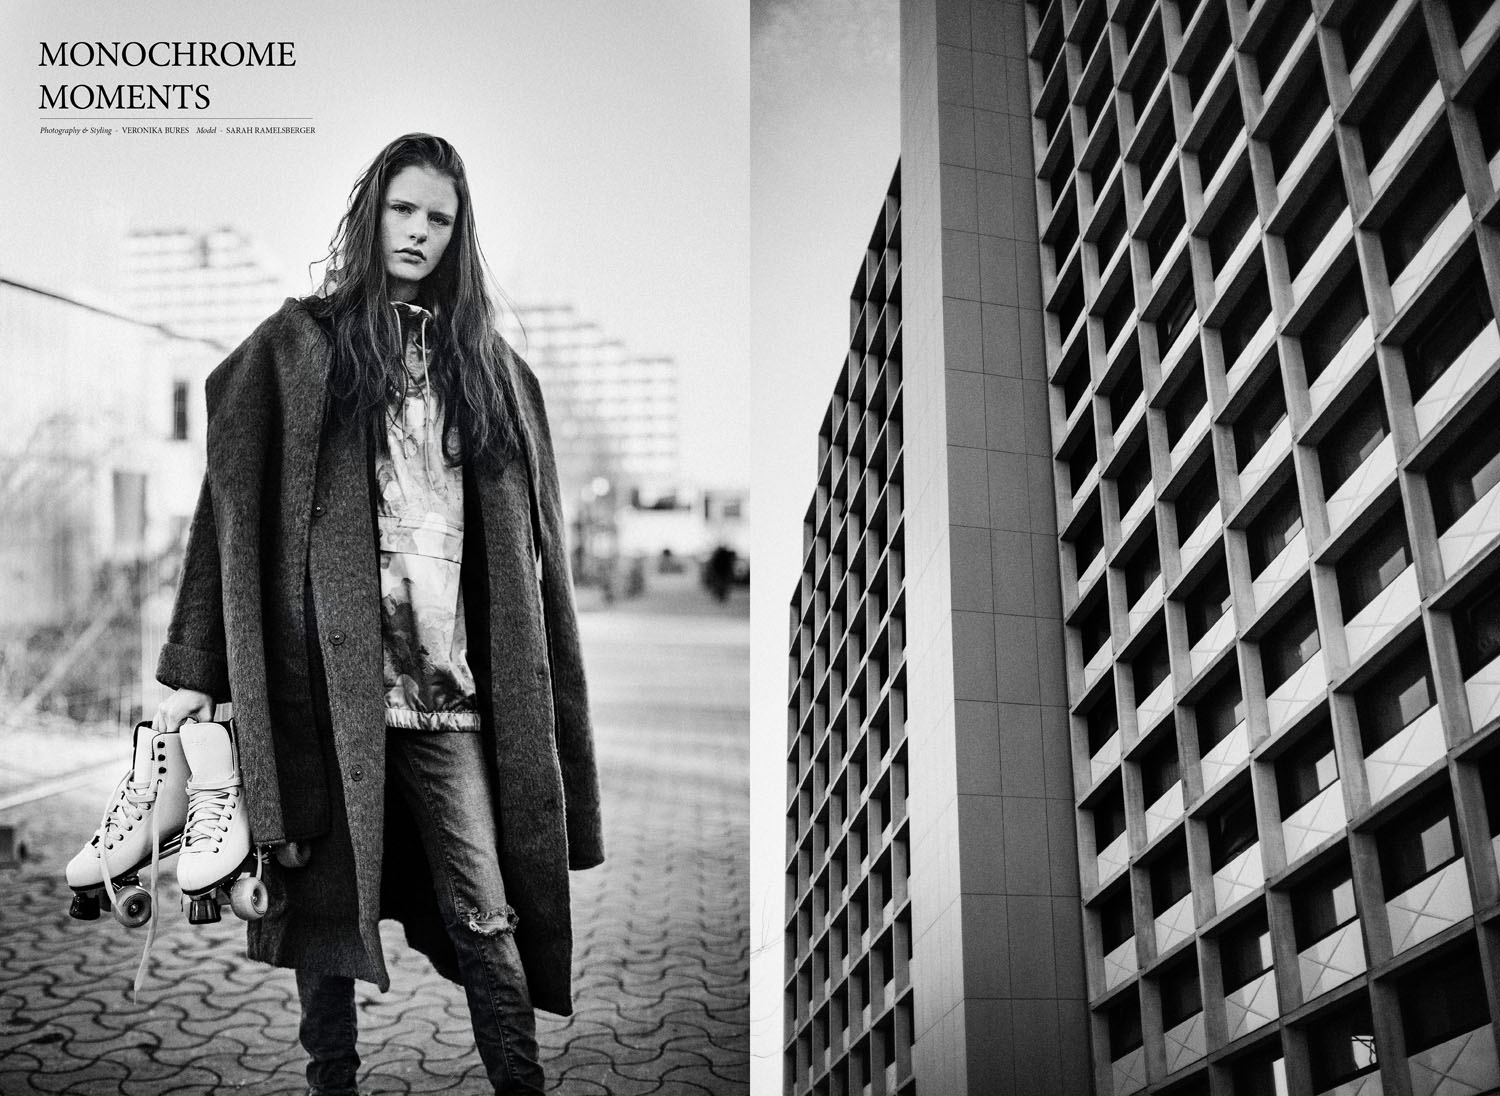 Monochrome moments by Veronika Bures for CHASSEUR MAGAZINE (1)